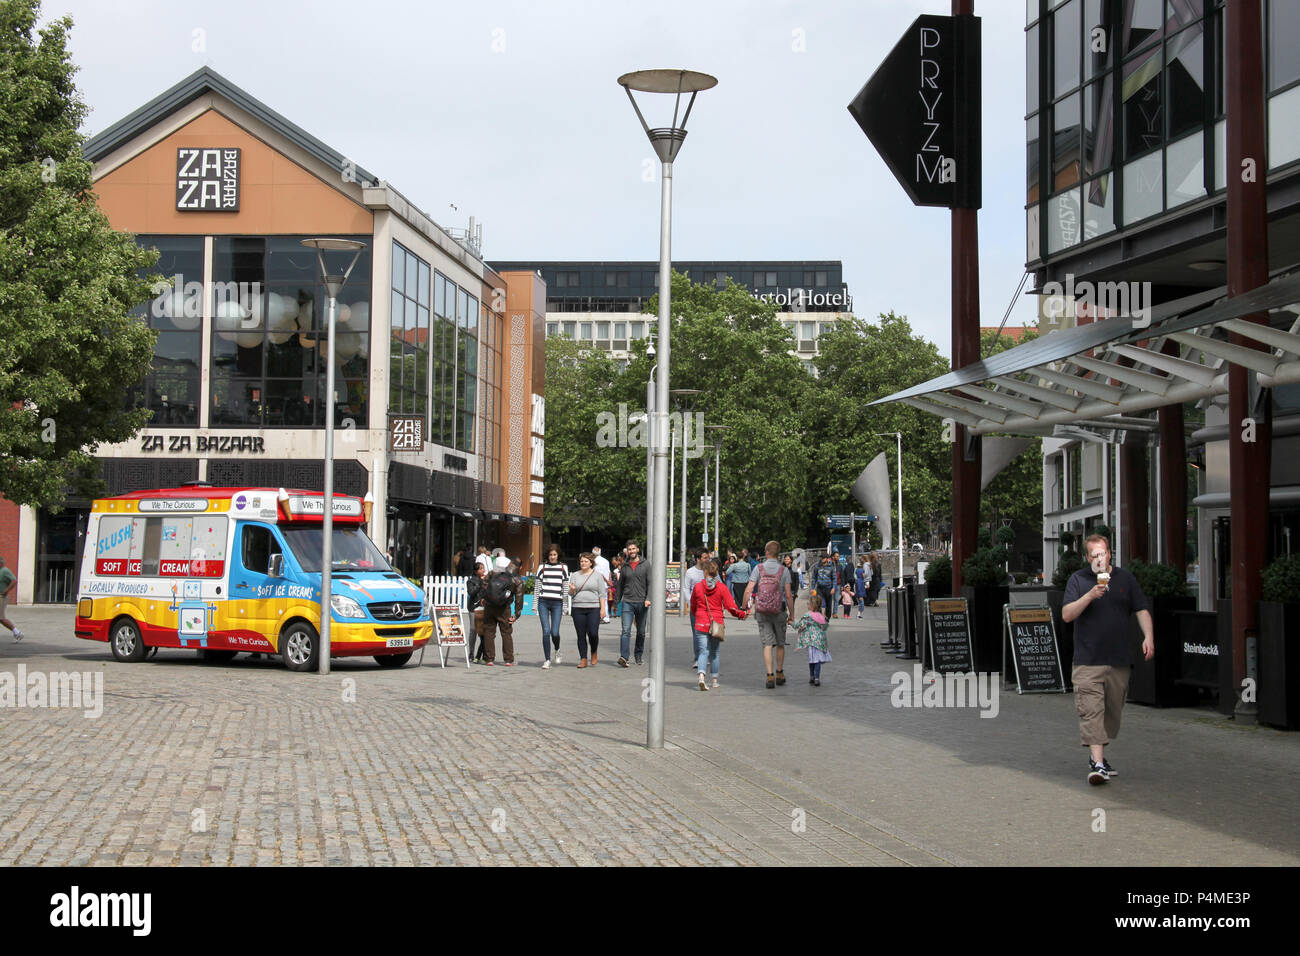 An ice cream van from We Are Curious sits outside Za Za Bazaar in Bristol, England. - Stock Image